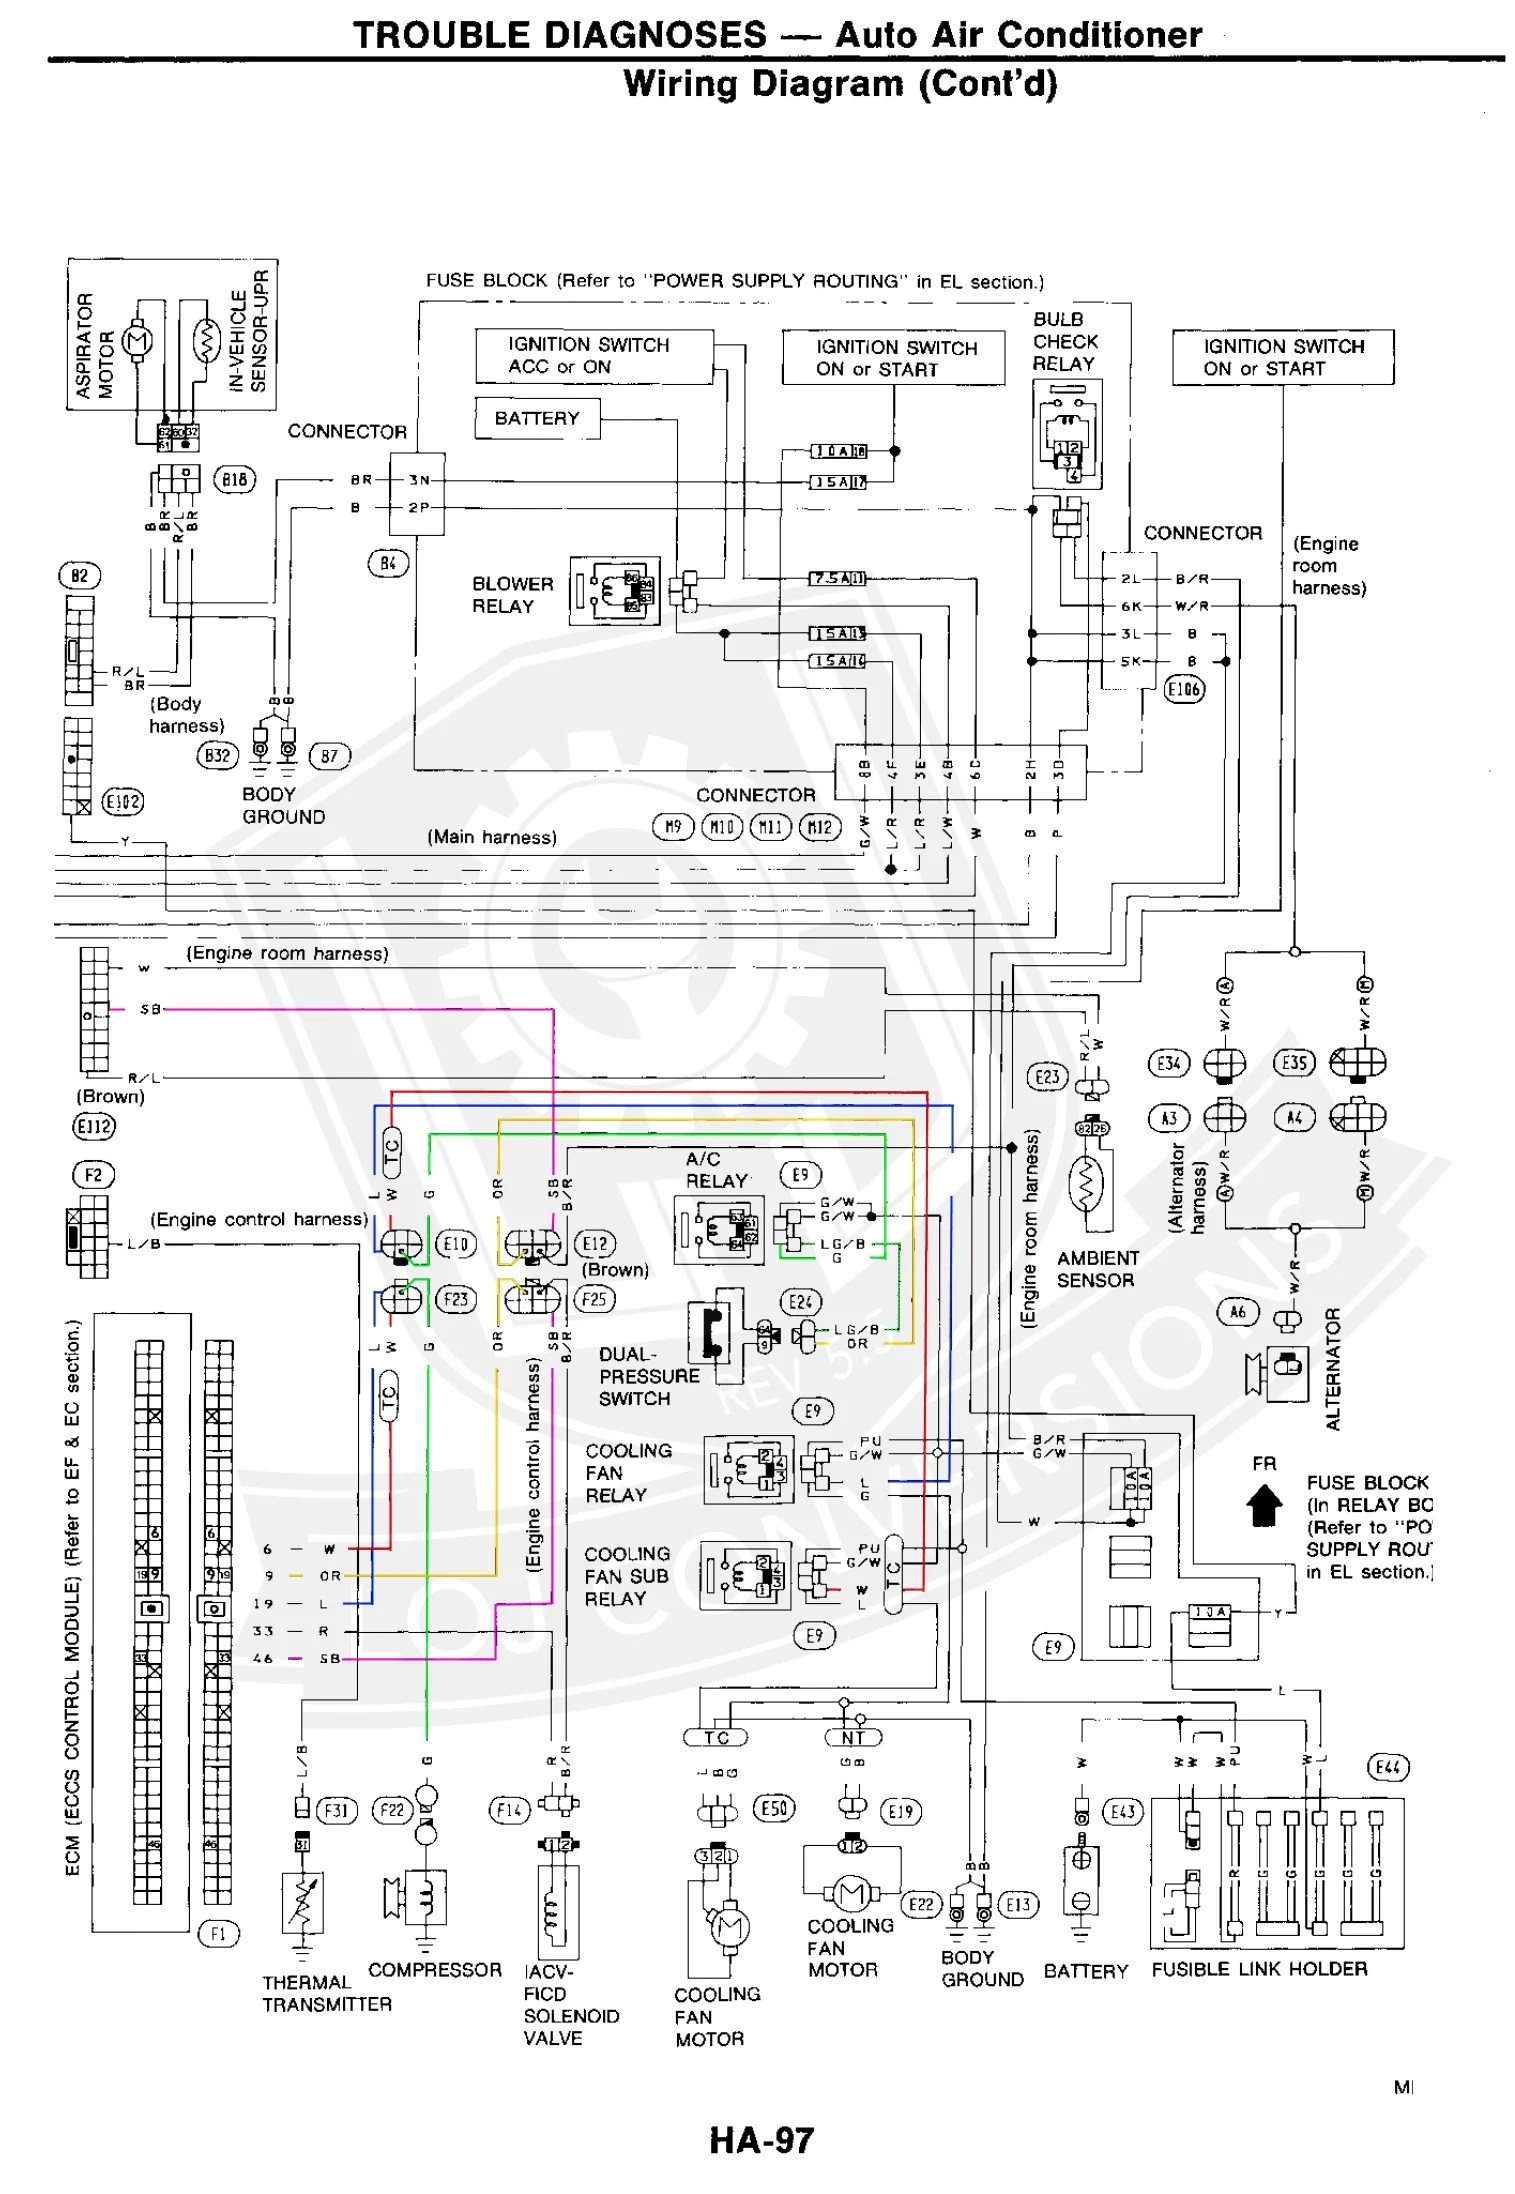 medium resolution of wiring diagram besides nissan 300zx engine bay also 300zx engine 300zx twin turbo engine diagram twinturbonet nissan 300zx